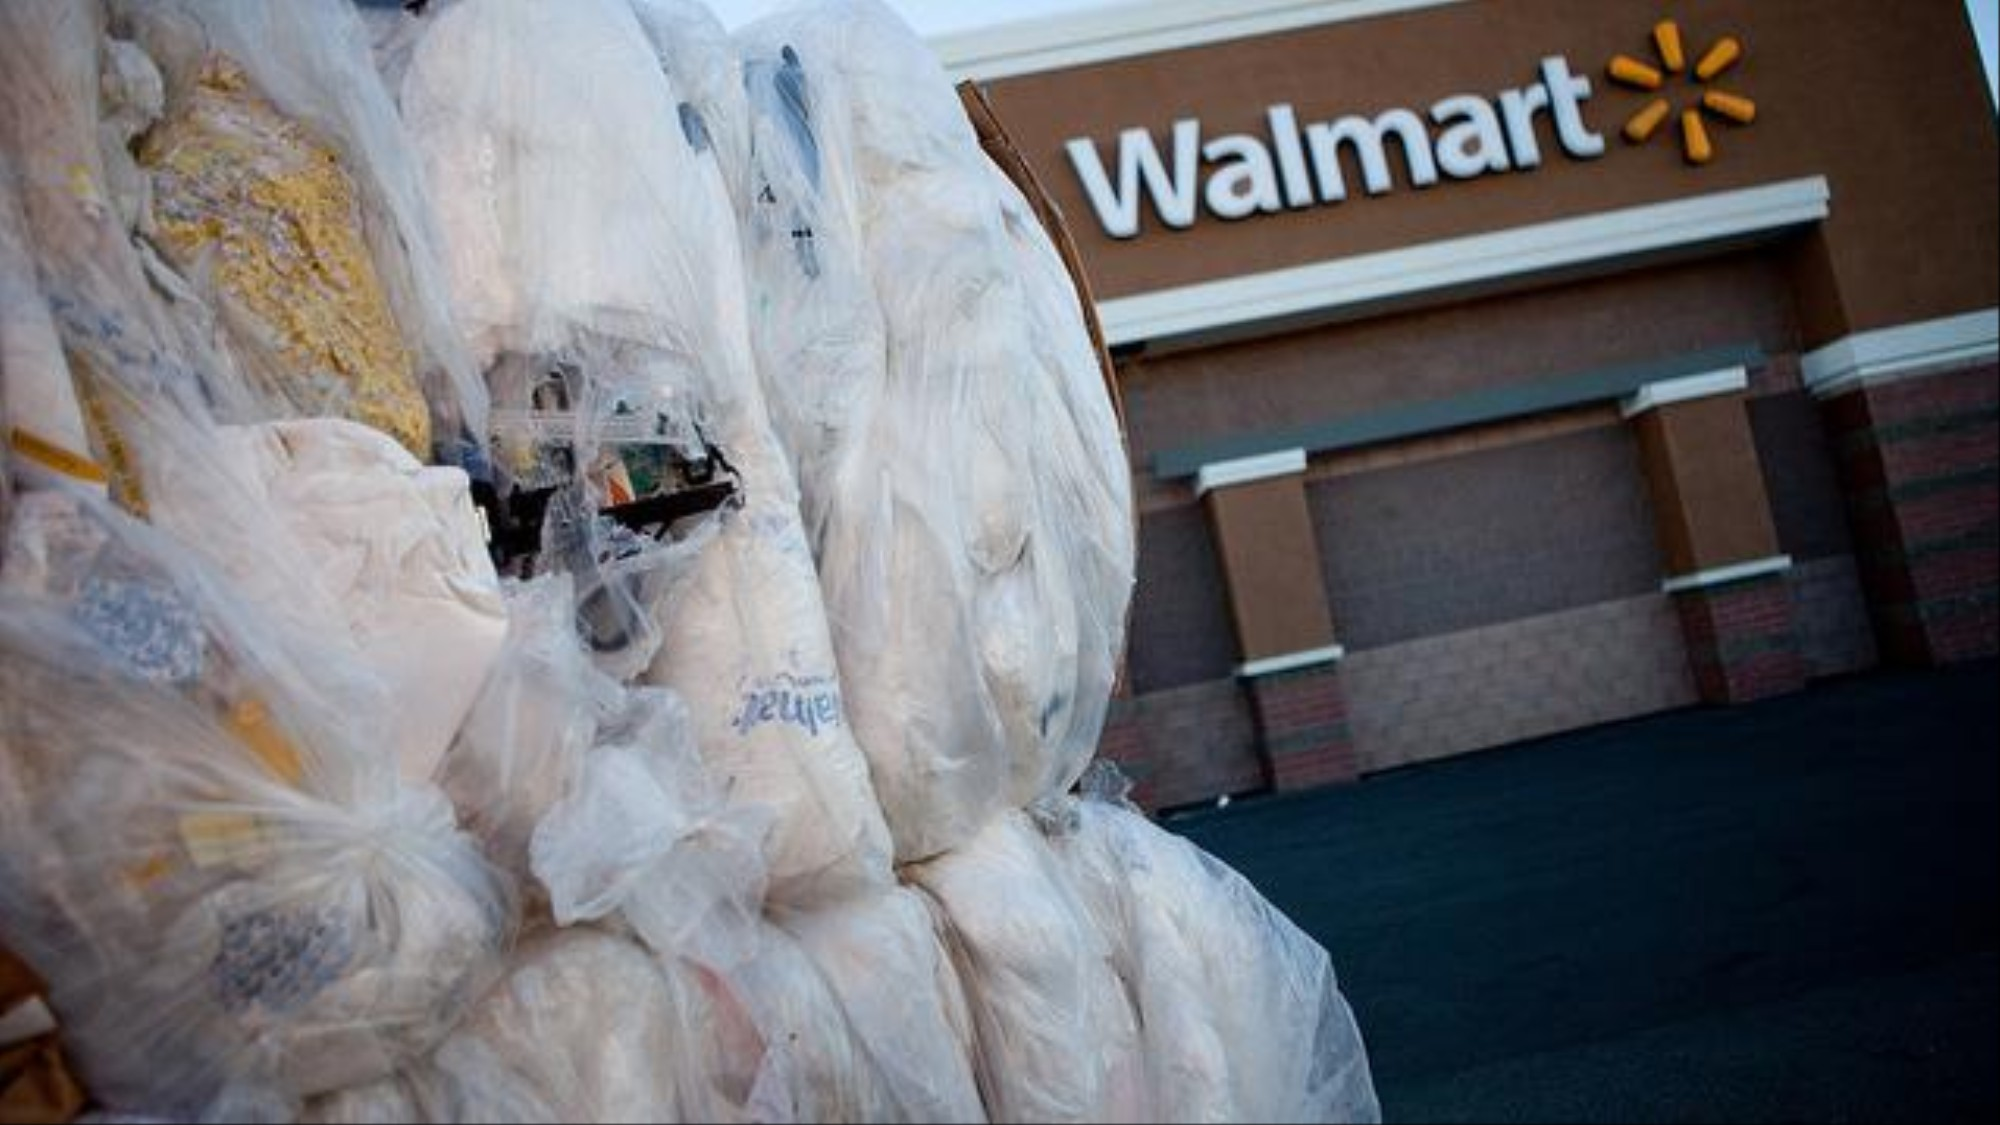 Walmart Left Explosive Fertilizer and Toxic Pesticides in Its